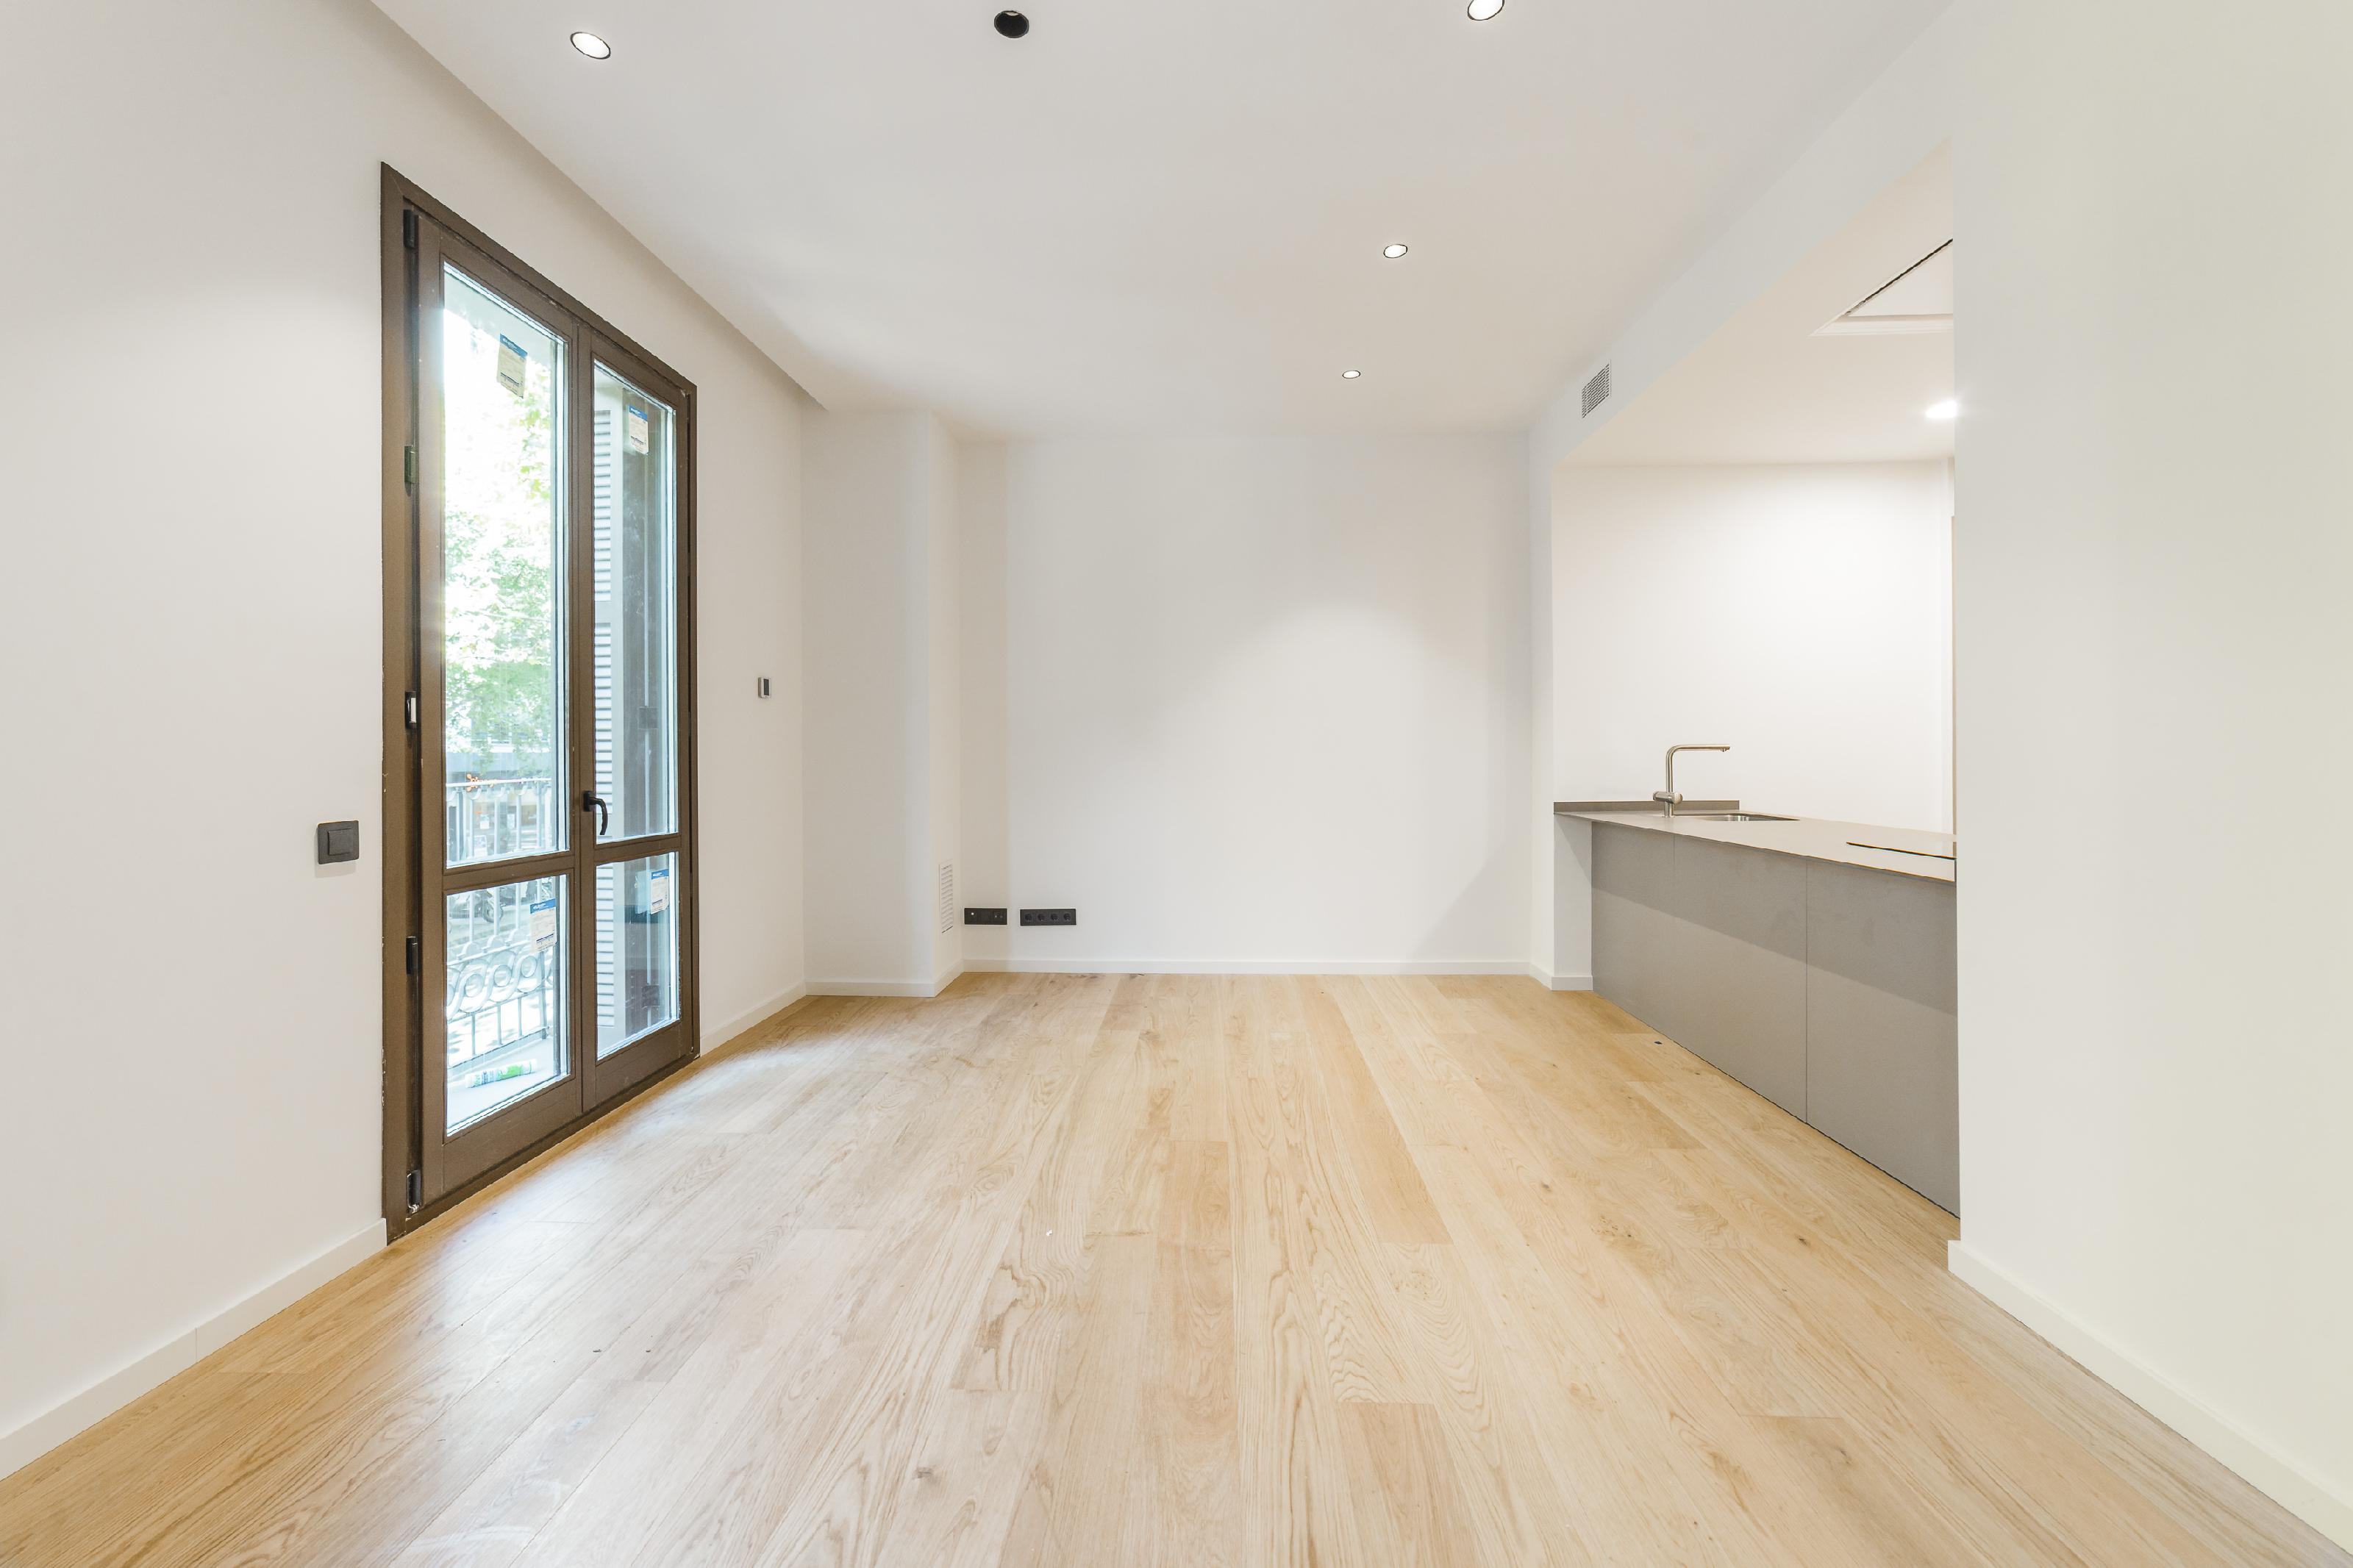 182176 Apartment for sale in Eixample, Old Left Eixample 10